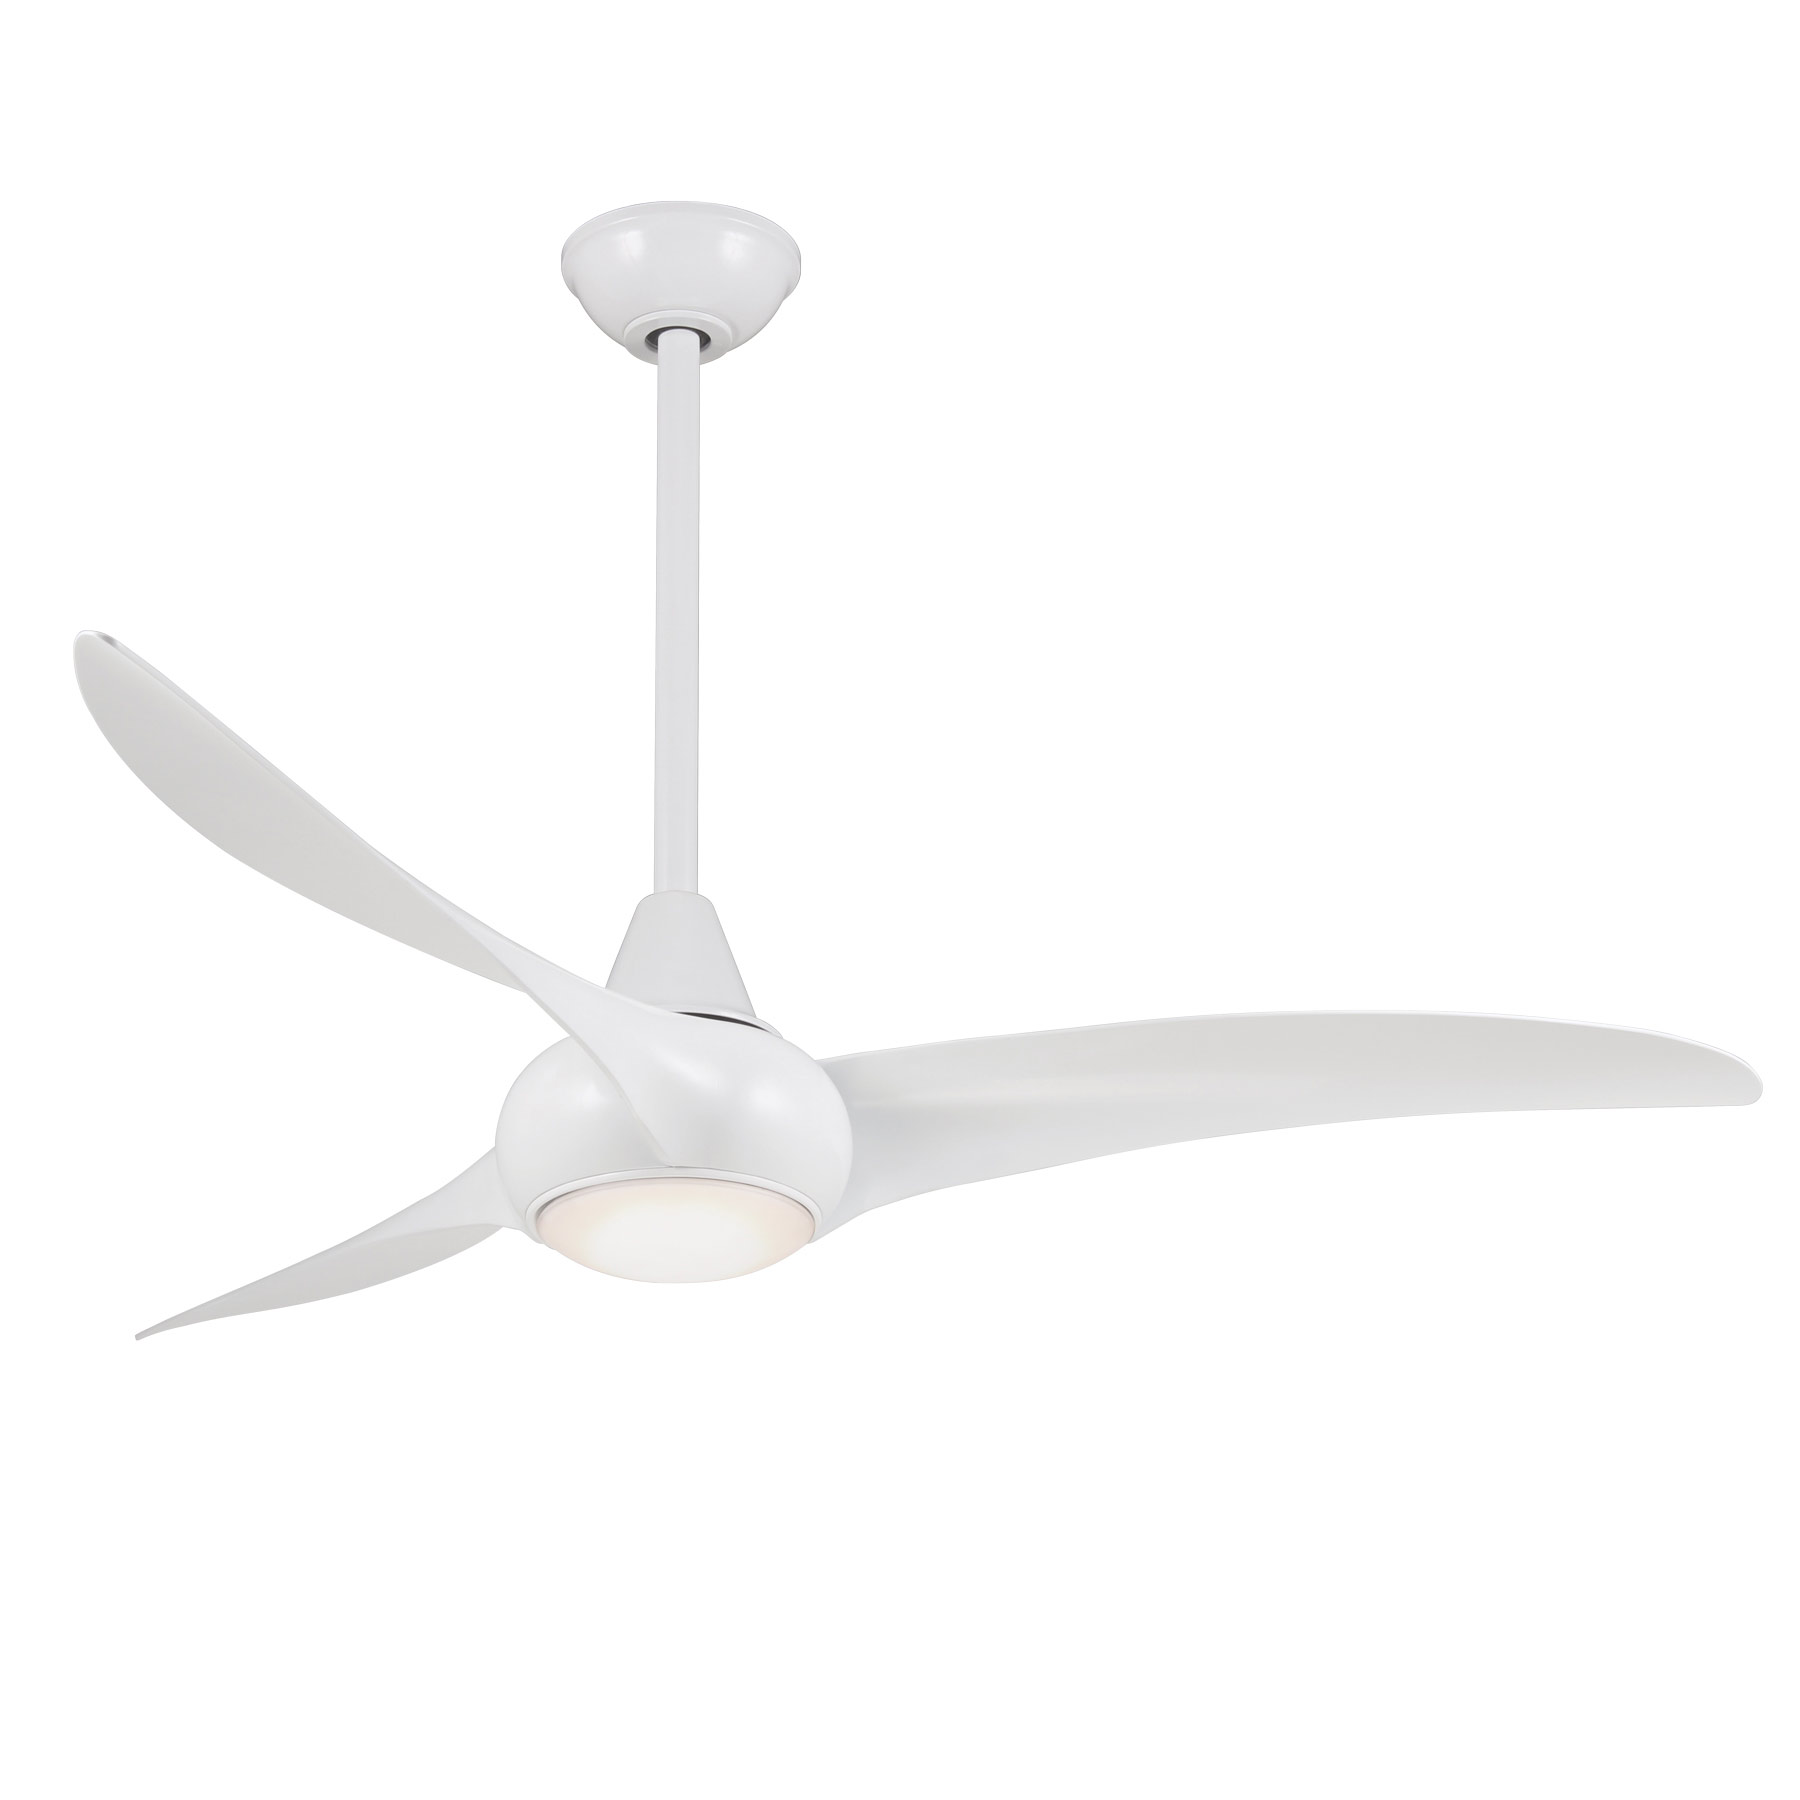 Wave LED Ceiling Fan by Minka Aire | F844-WH